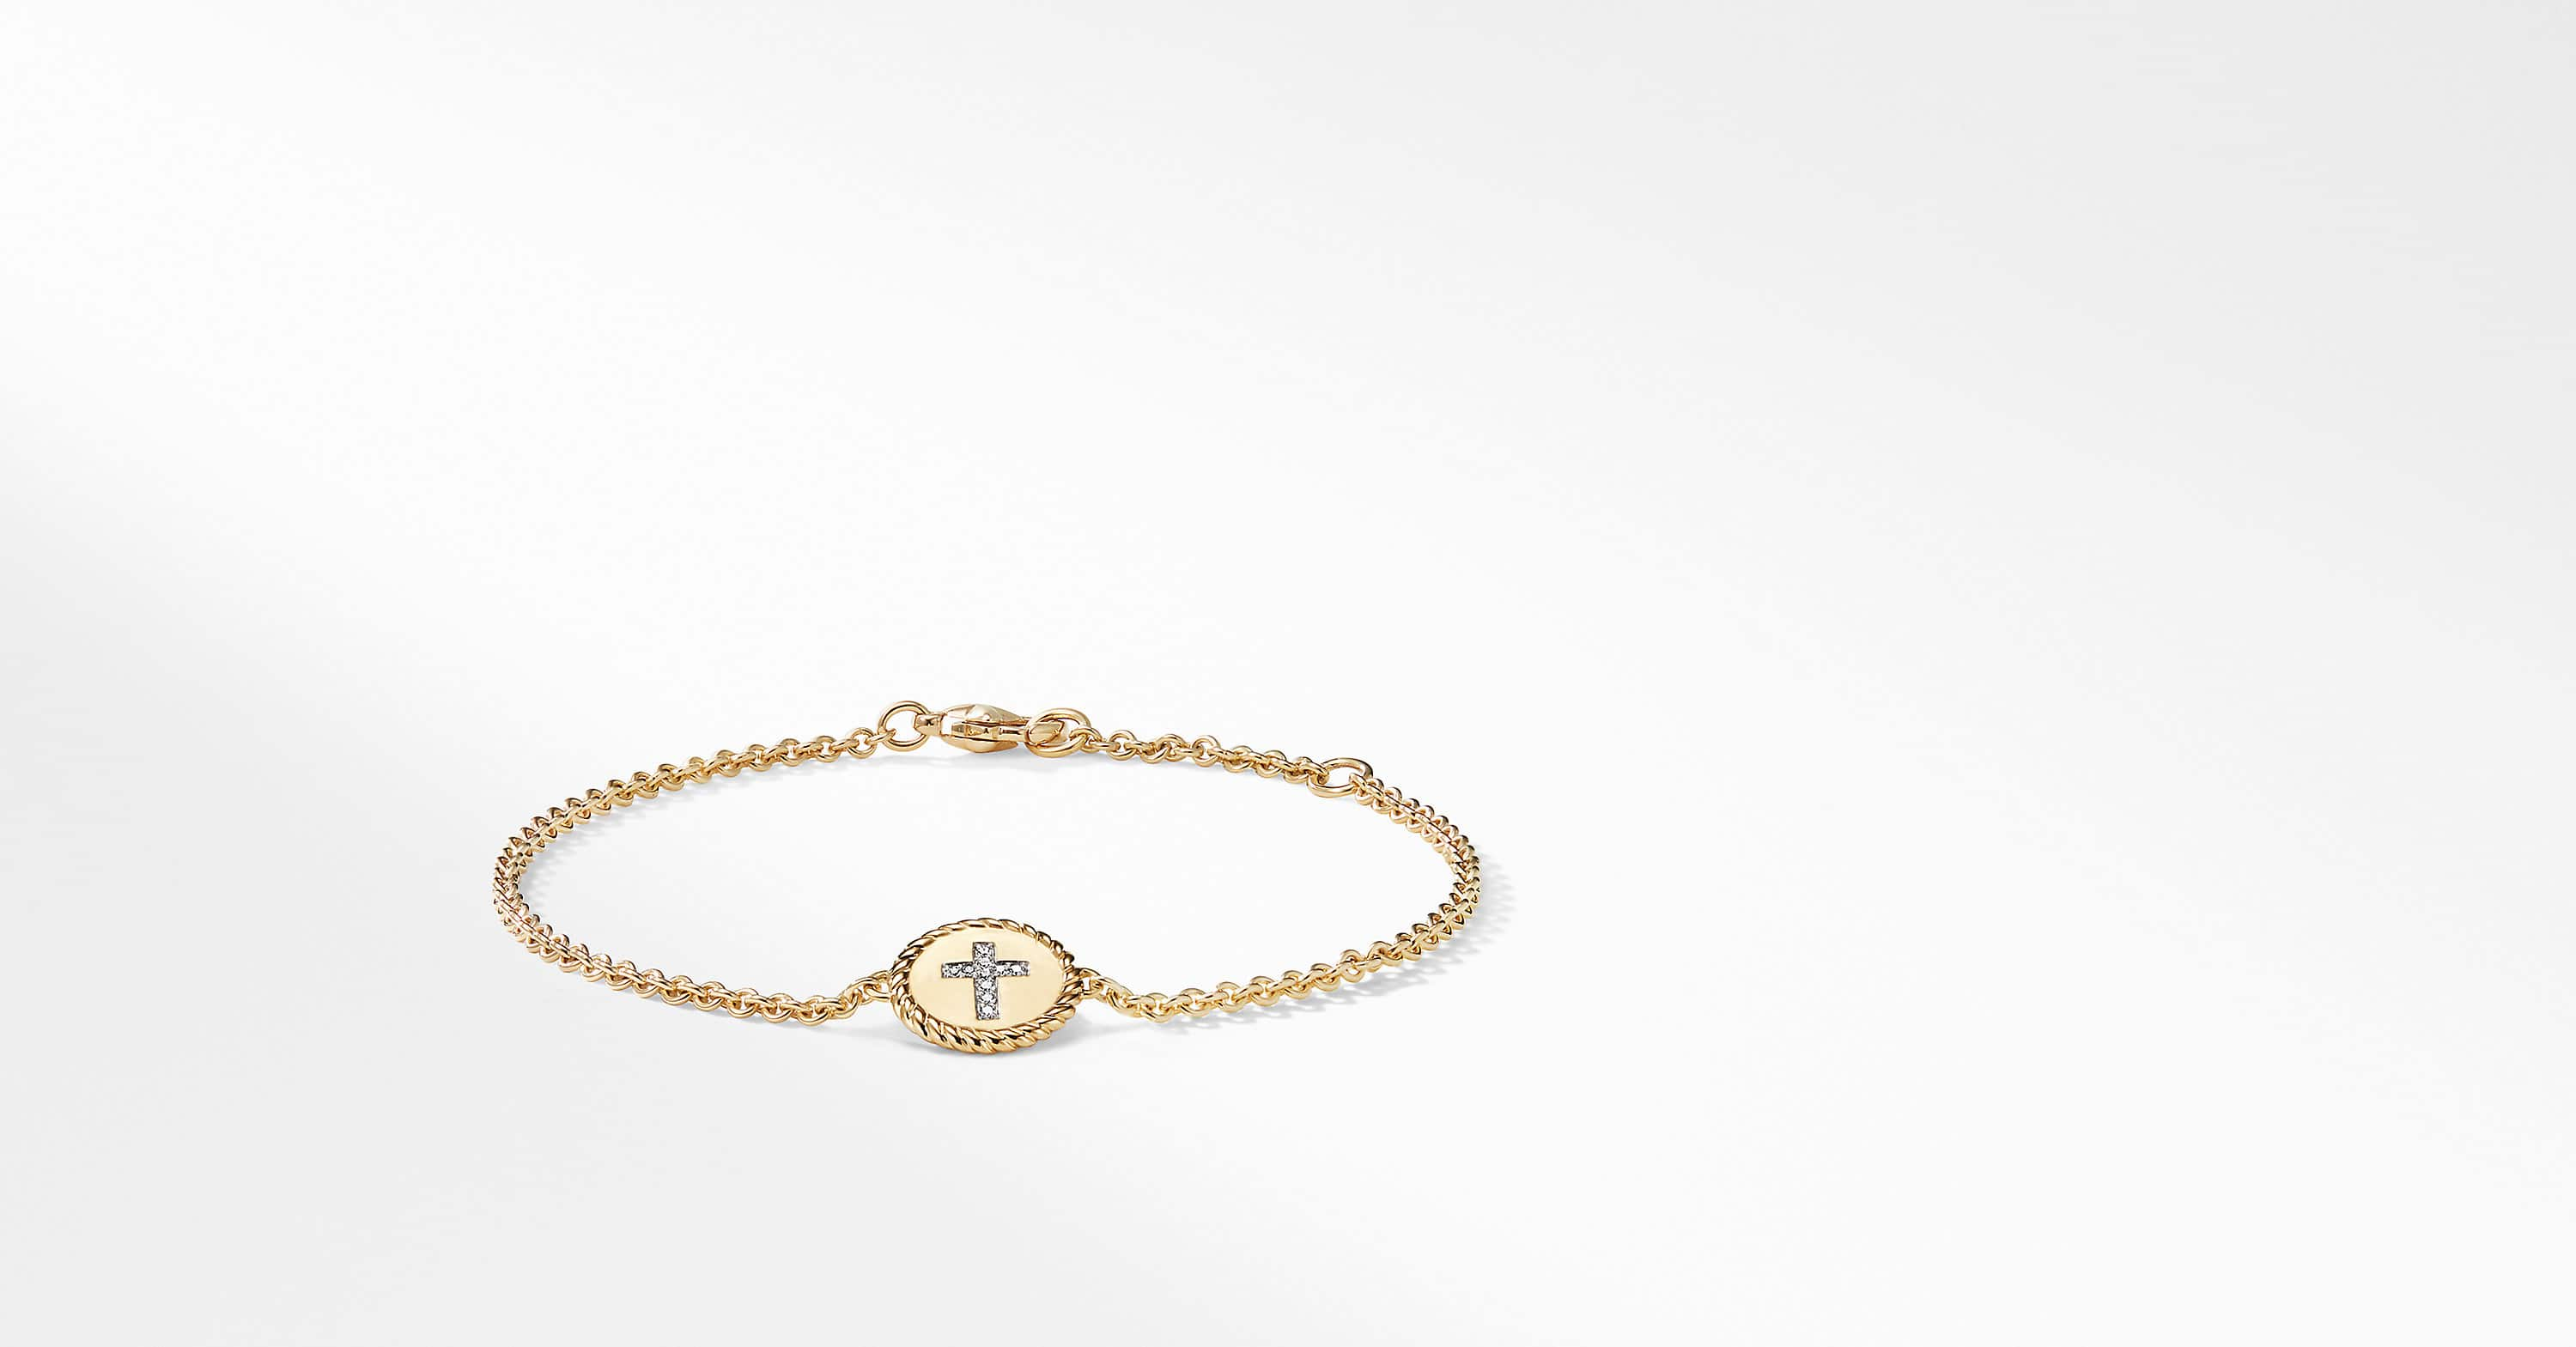 Cable Collectible Cross Bracelet with Diamonds in 18K Gold